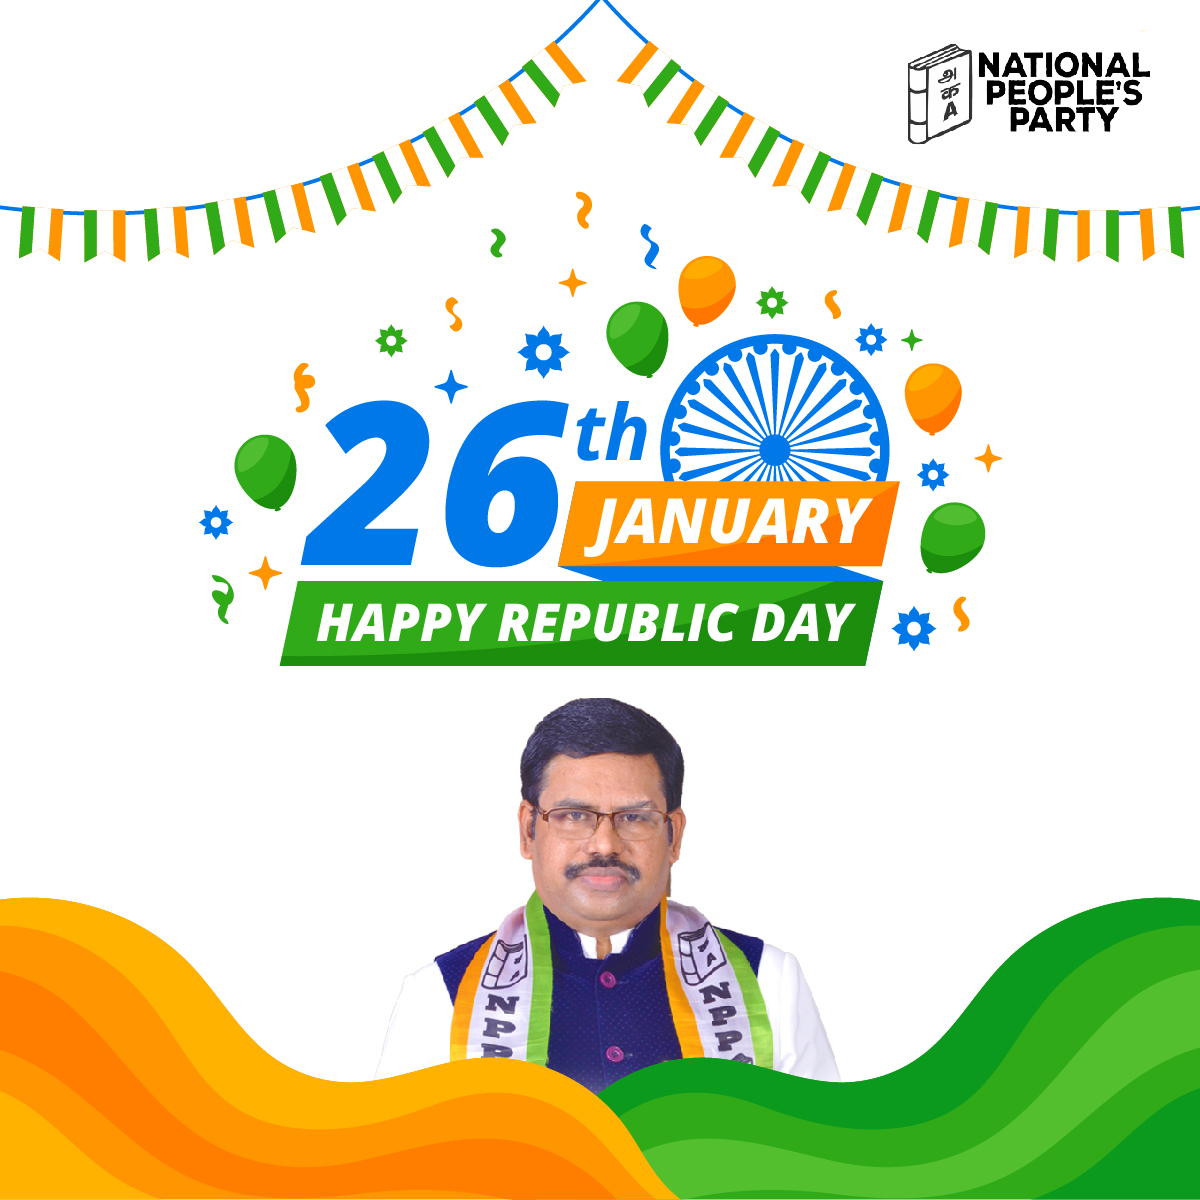 Let the tricolor go high and reach the heights to represent a strong nation on this day. Happy Republic Day!!! #NPP #NationalPeoplesParty #TamilNadu #Youthday #youth #love #community #india #education #leadership #inspiration #peace #motivation #life #republicday #india